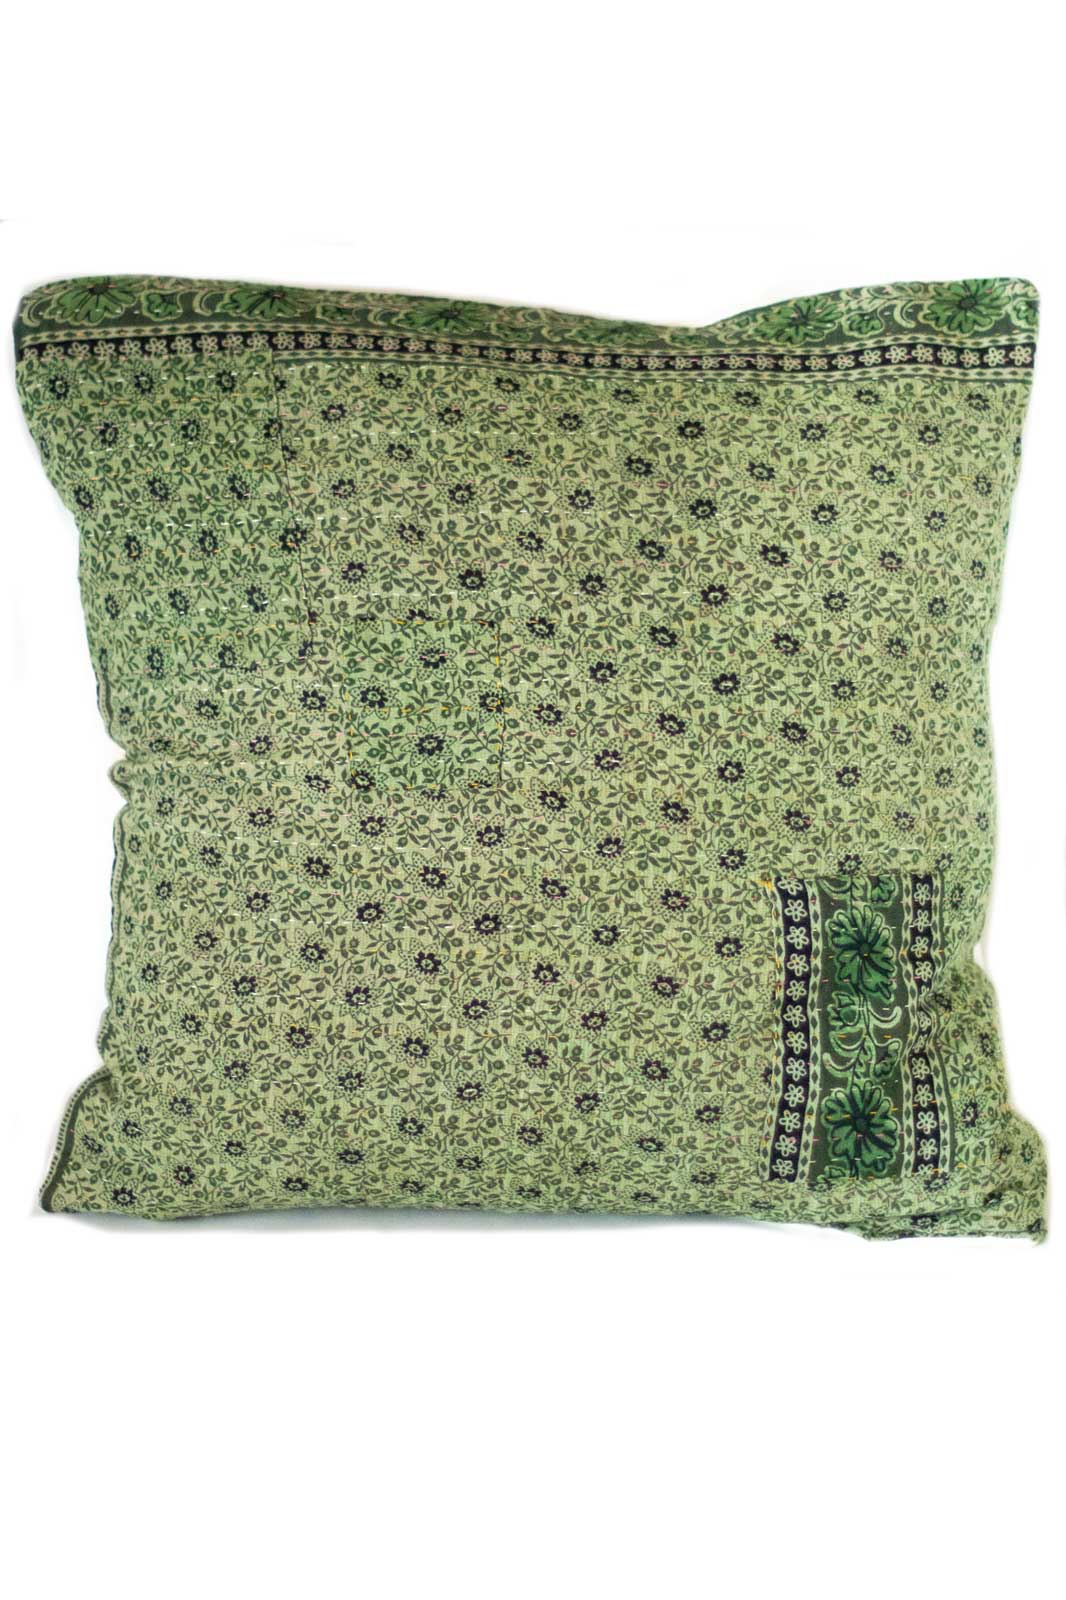 Intricate no. 1 Kantha Pillow Cover